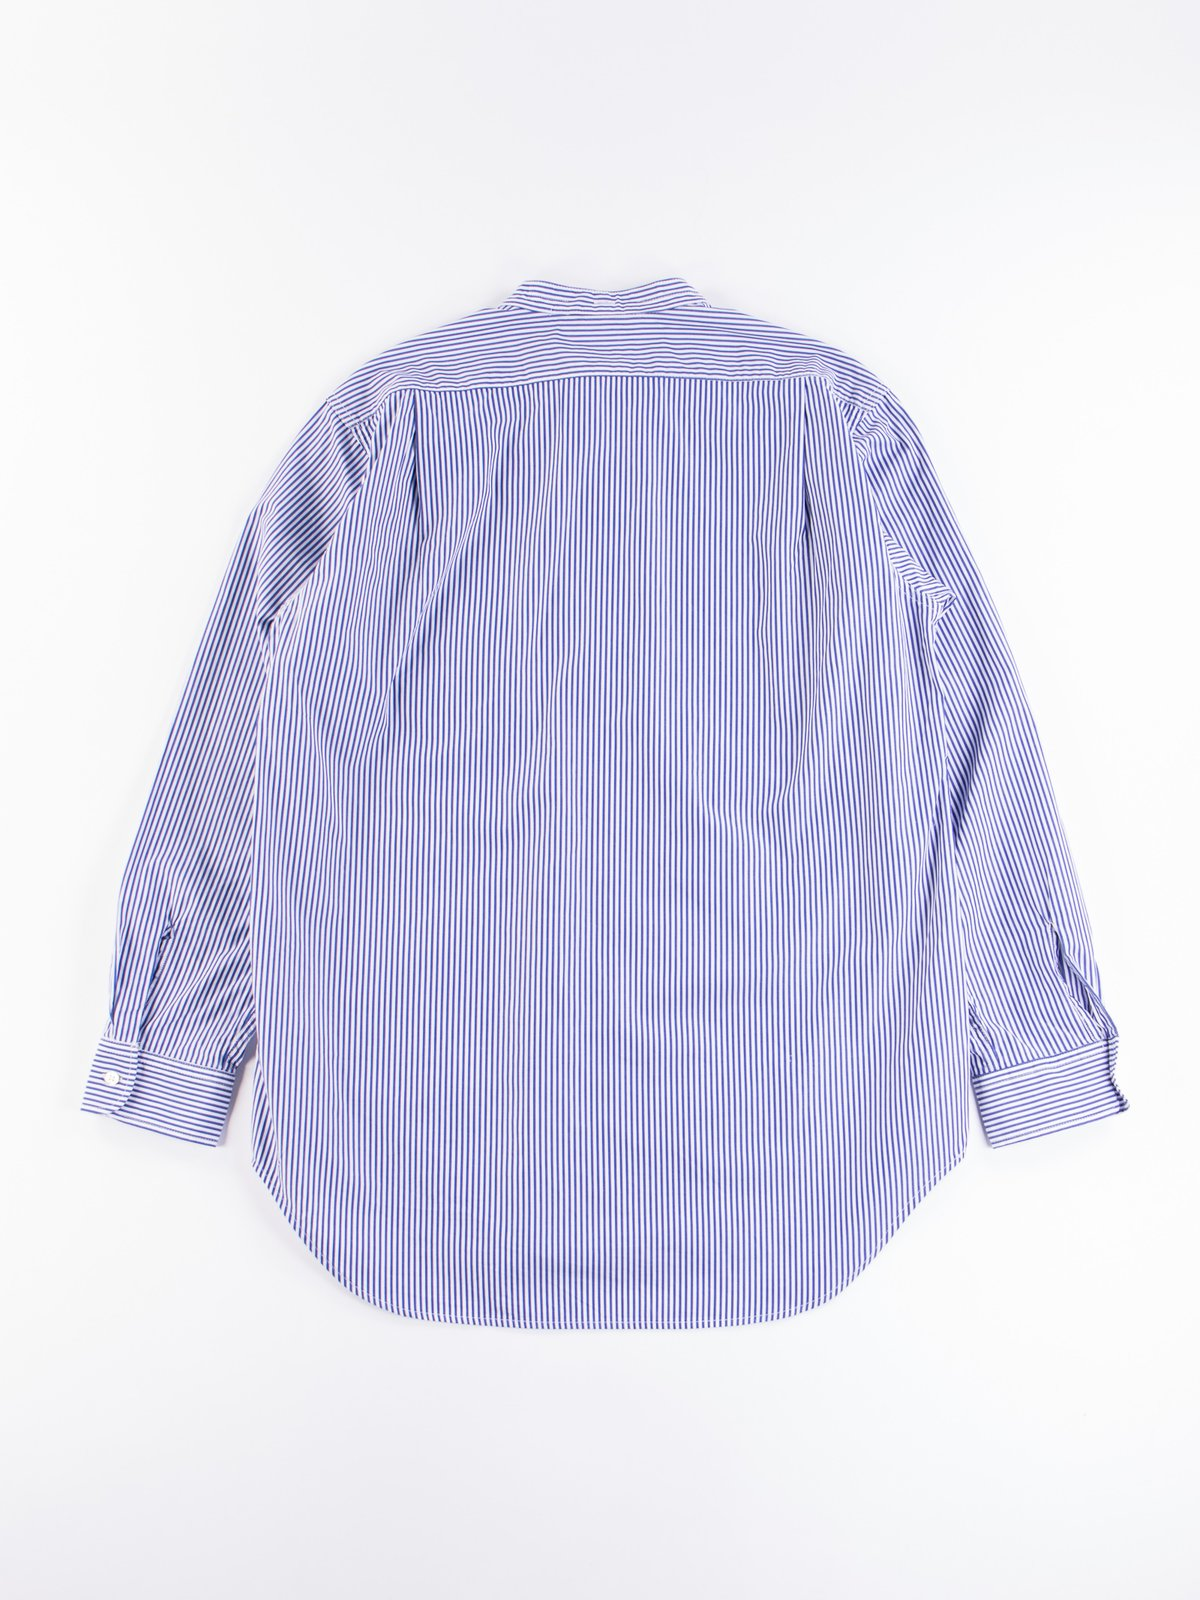 Blue/White Candy Stripe Broadcloth Banded Collar Shirt - Image 6